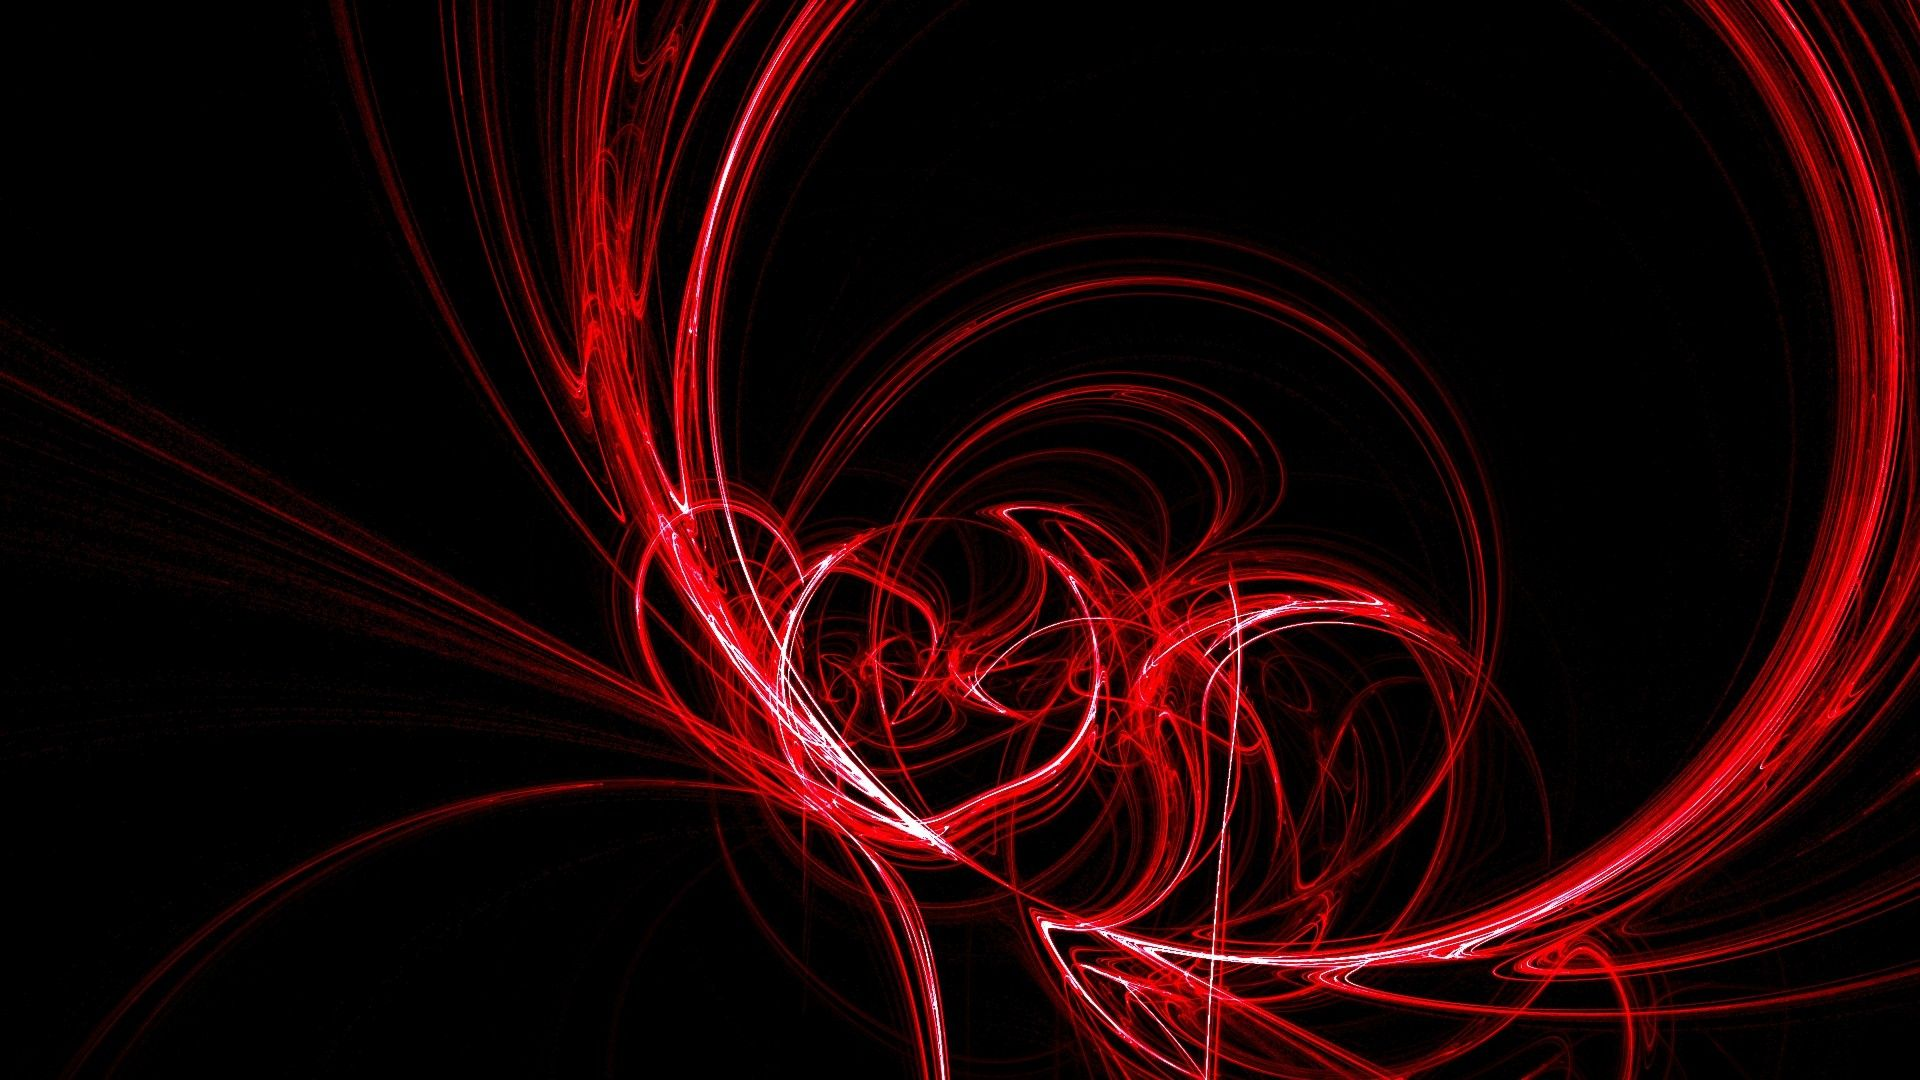 Red Abstract Gaming Wallpapers On Wallpaperdog